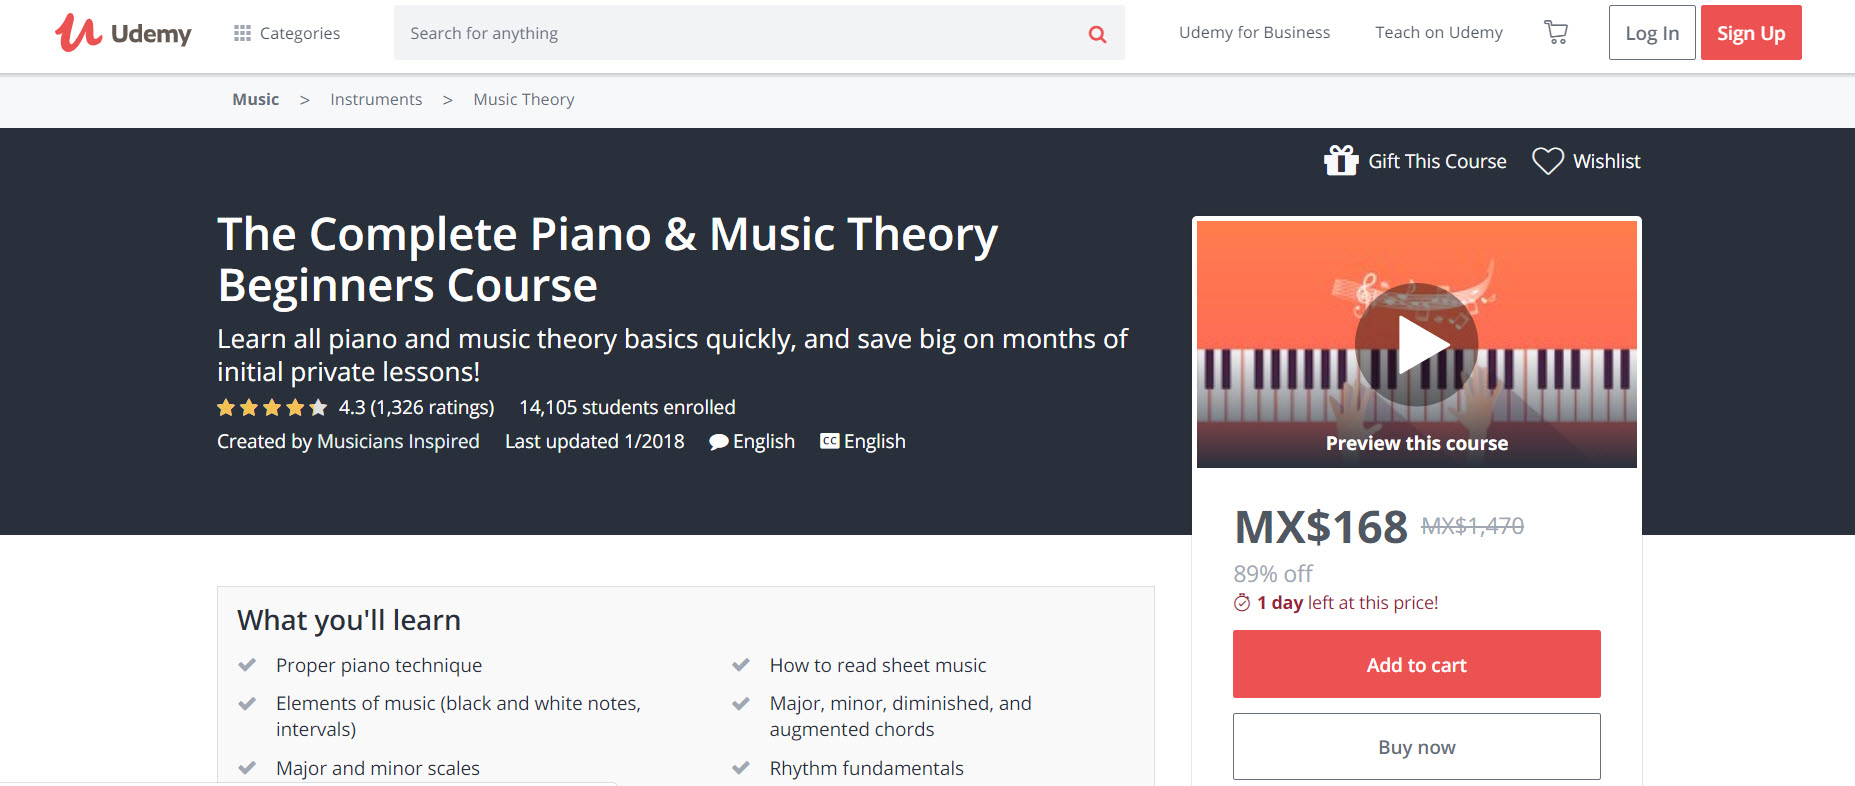 Piano & Music Theory for Beginners Udemy